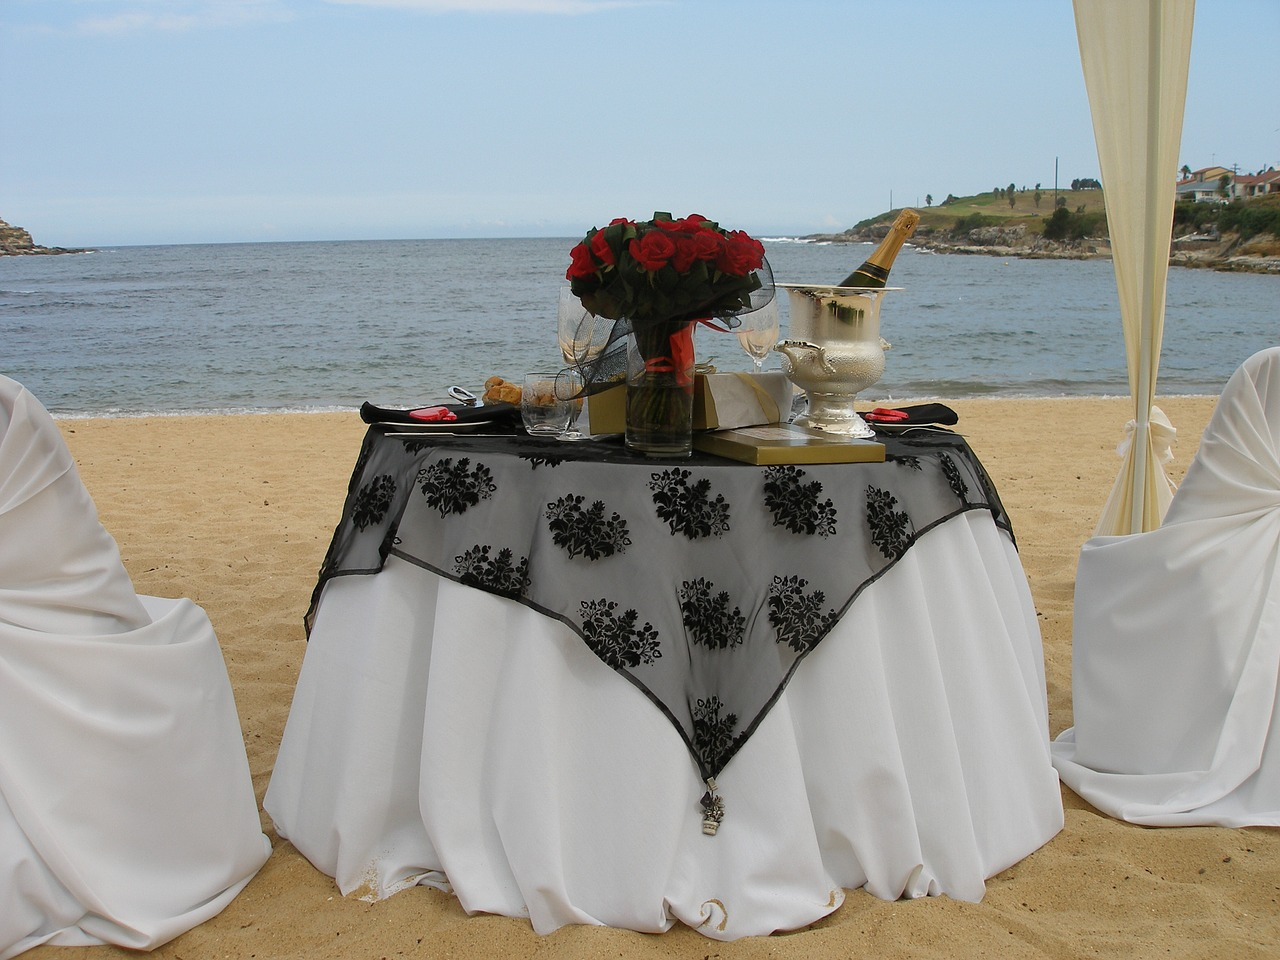 How to make any special occasion more memorable?